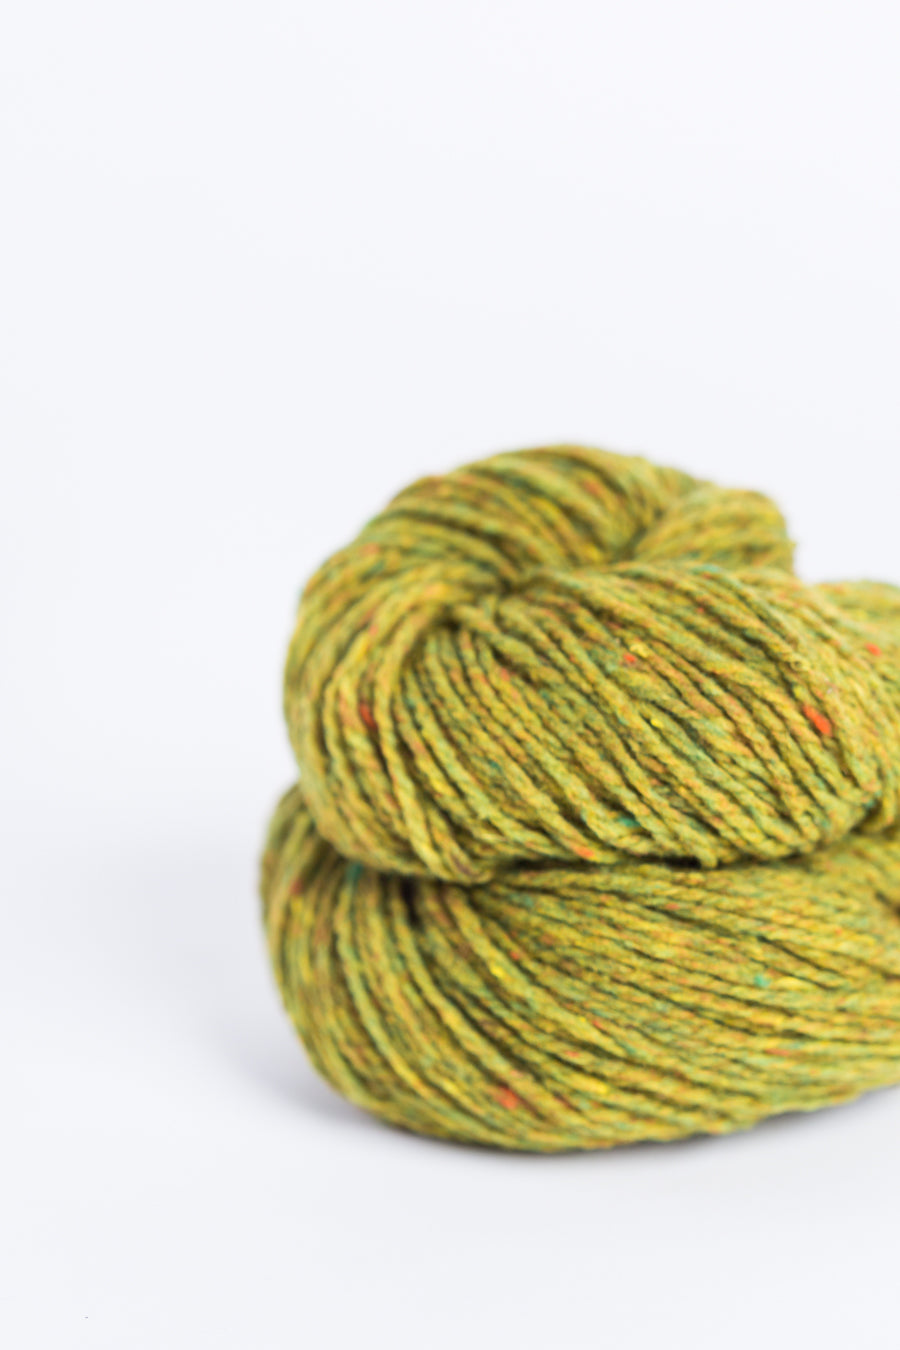 Brooklyn Tweed Yarn - Shelter